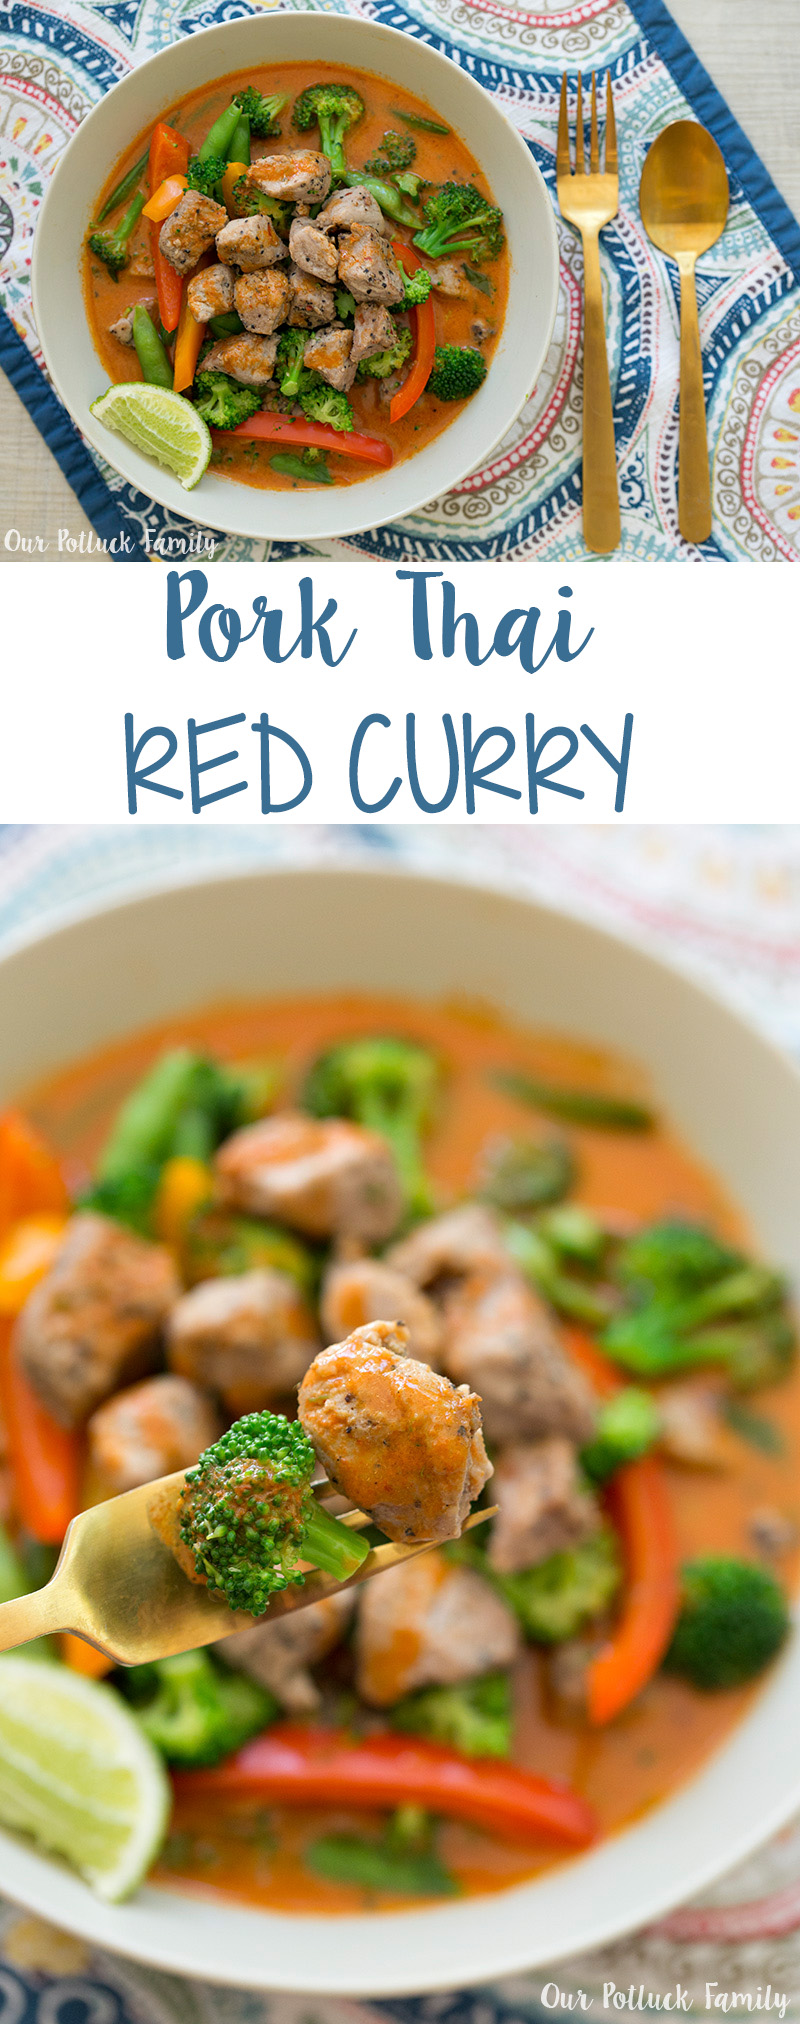 Pork Thai Red Curry